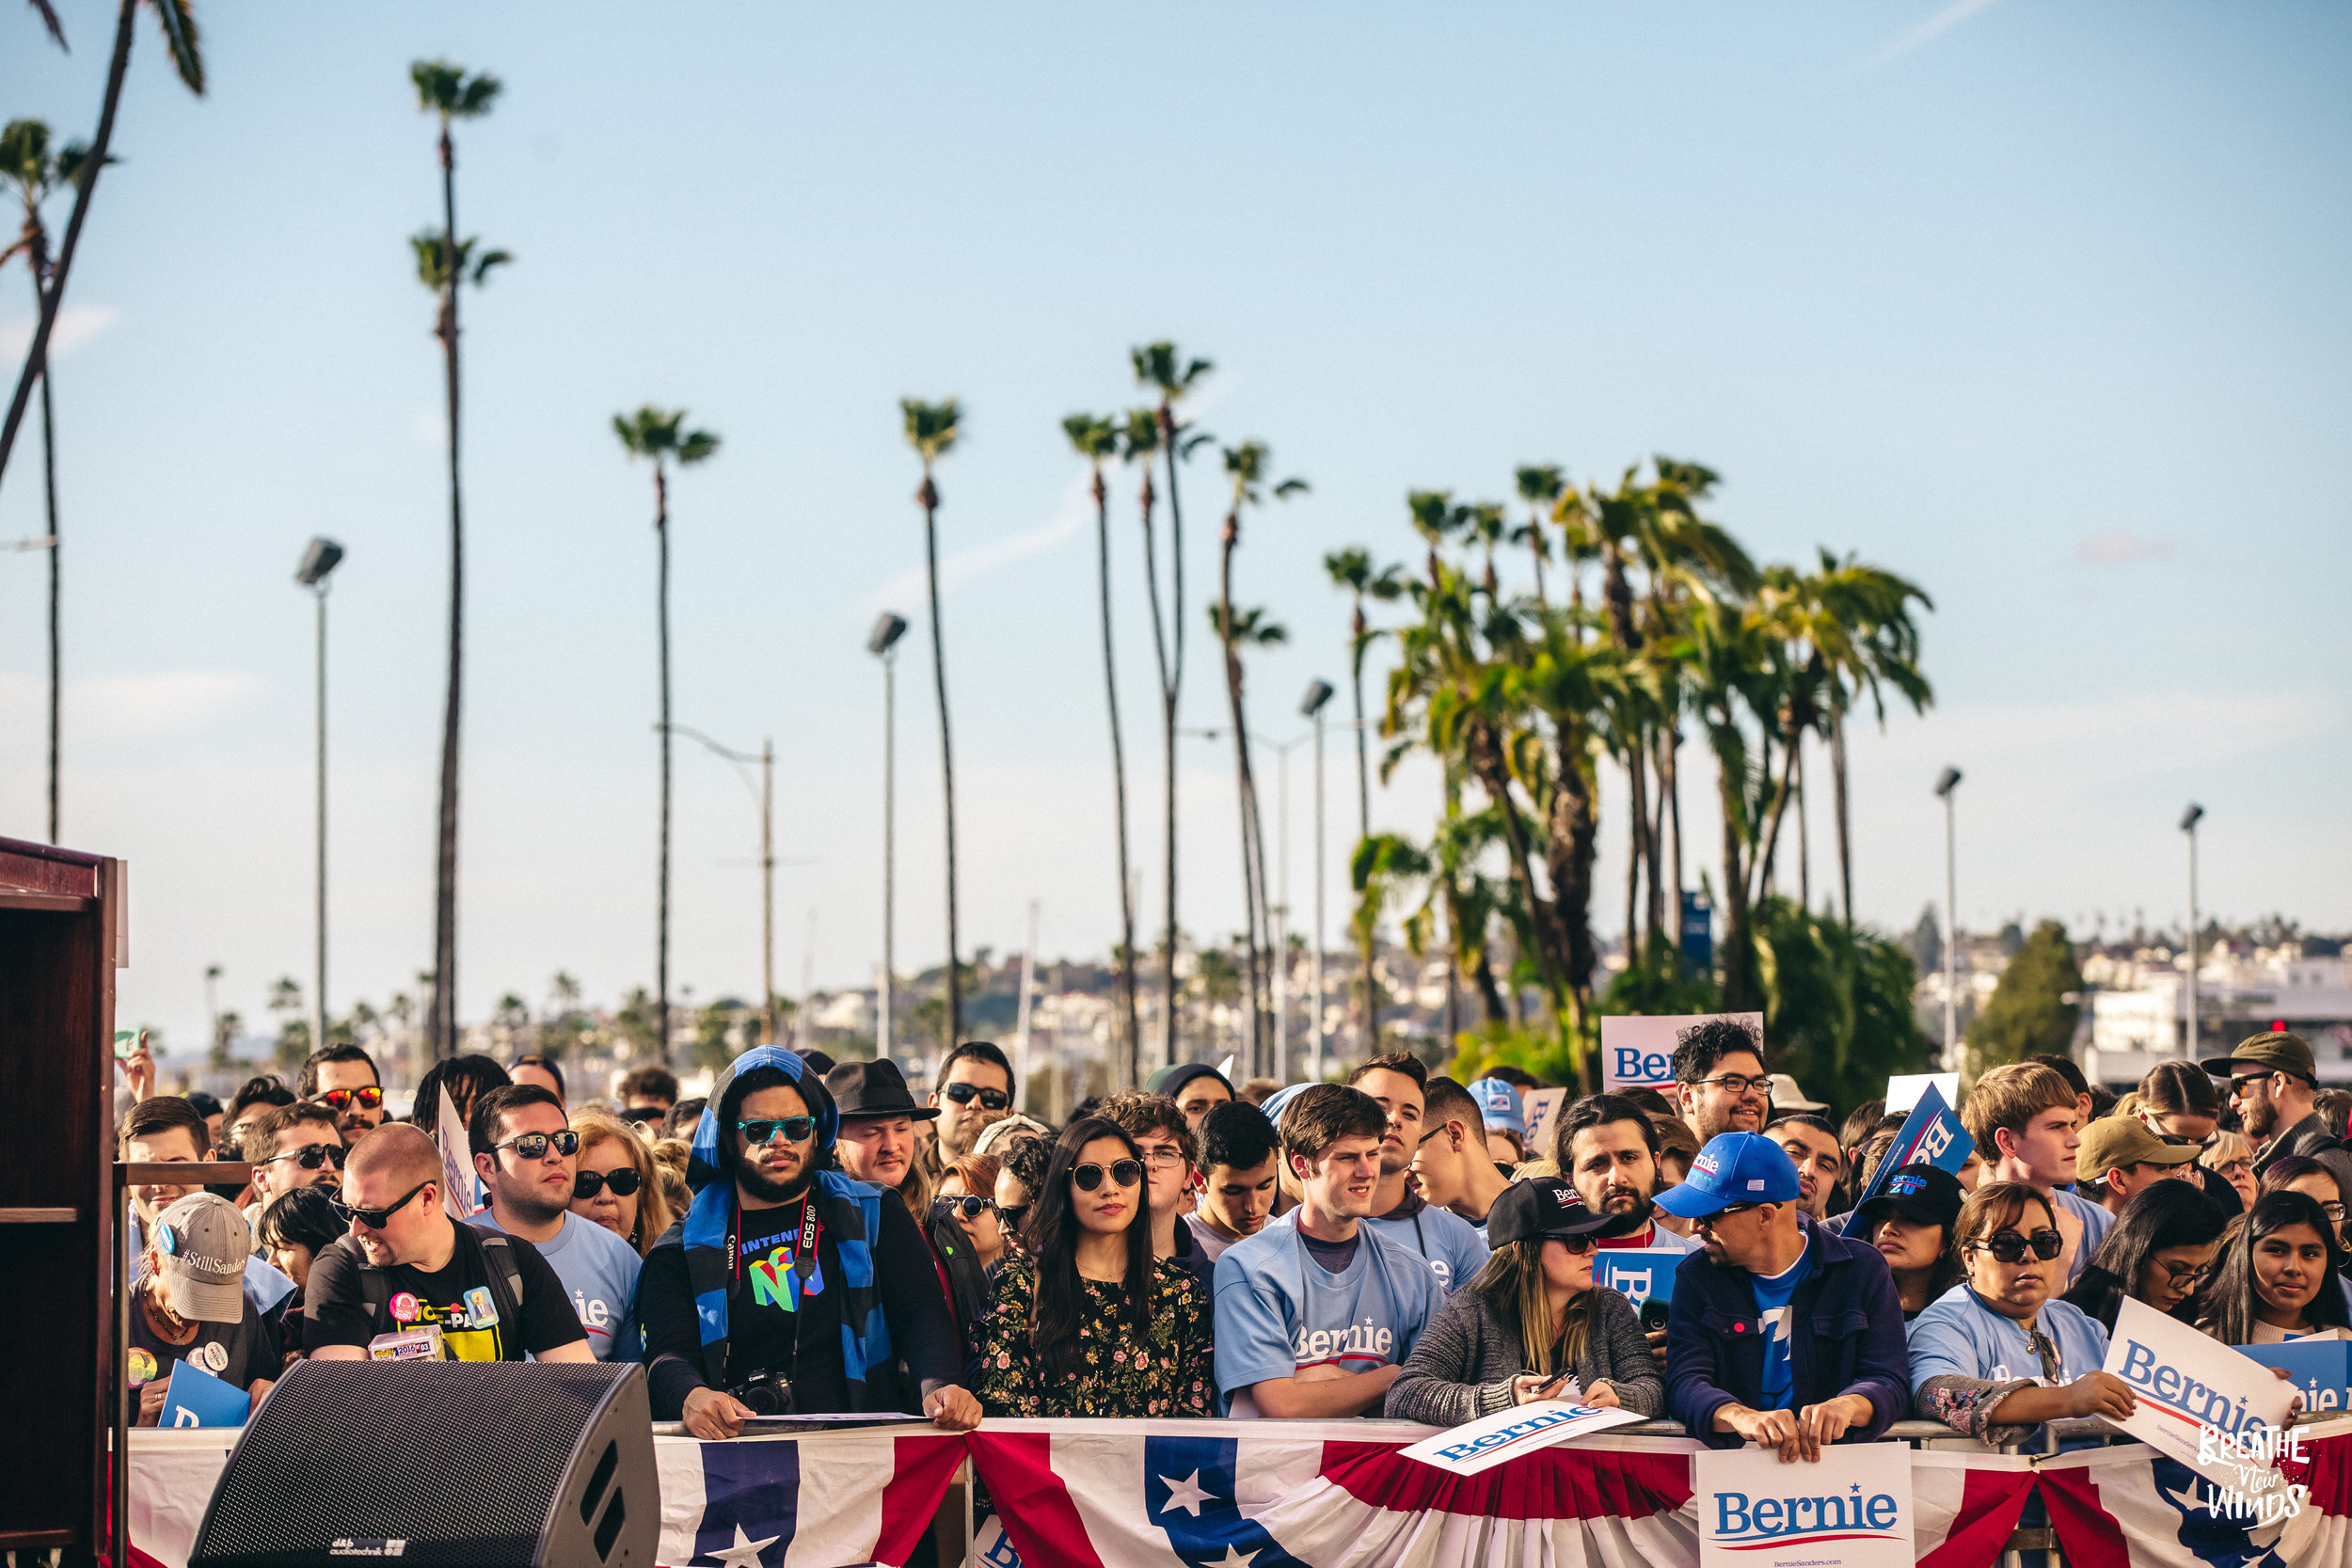 BernieInSD_22March2019-Crowd (59 of 94).jpg